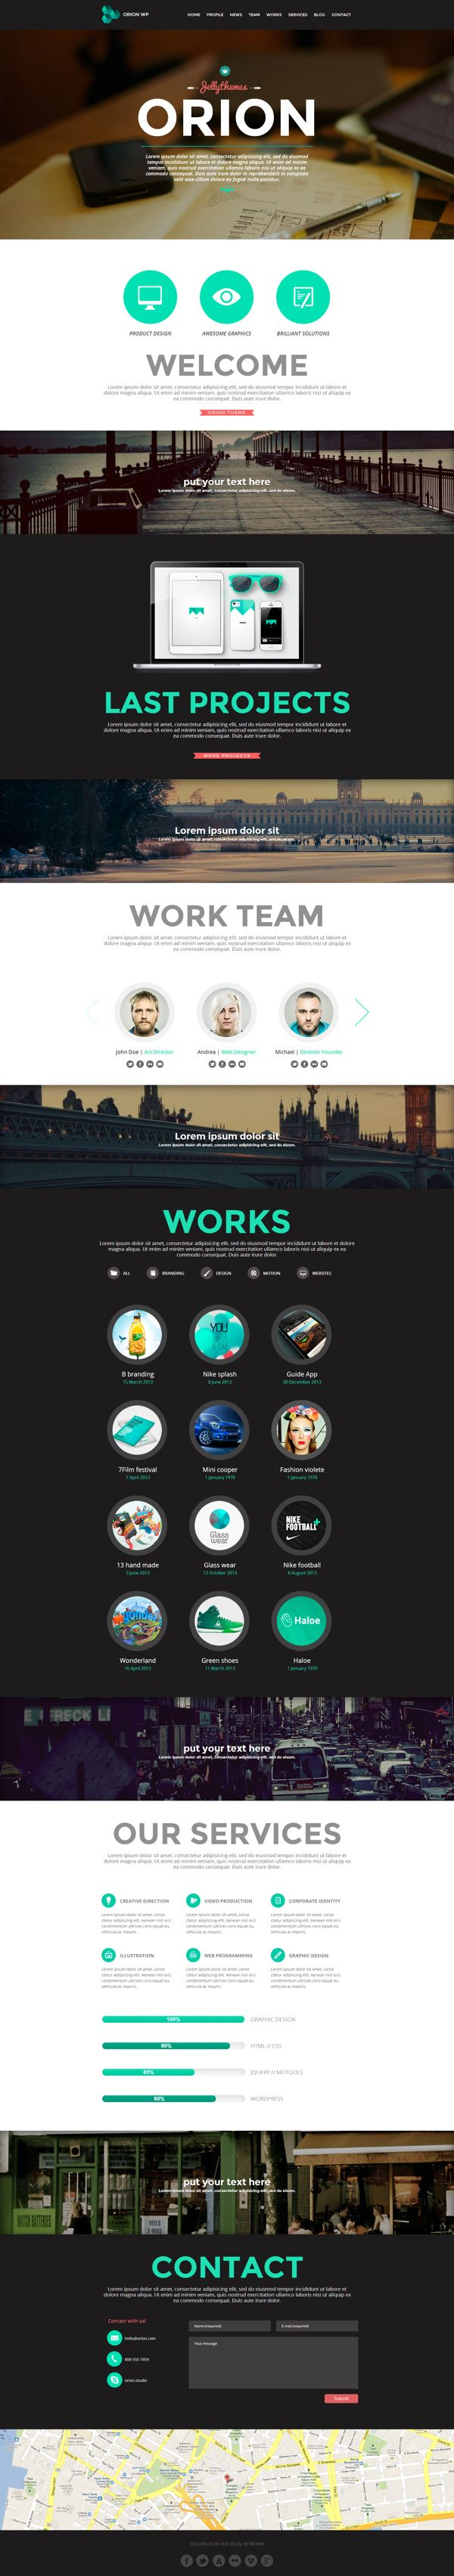 Orion - Responsive One Page Wordpress Template by Zizaza - design ocean , via Behance